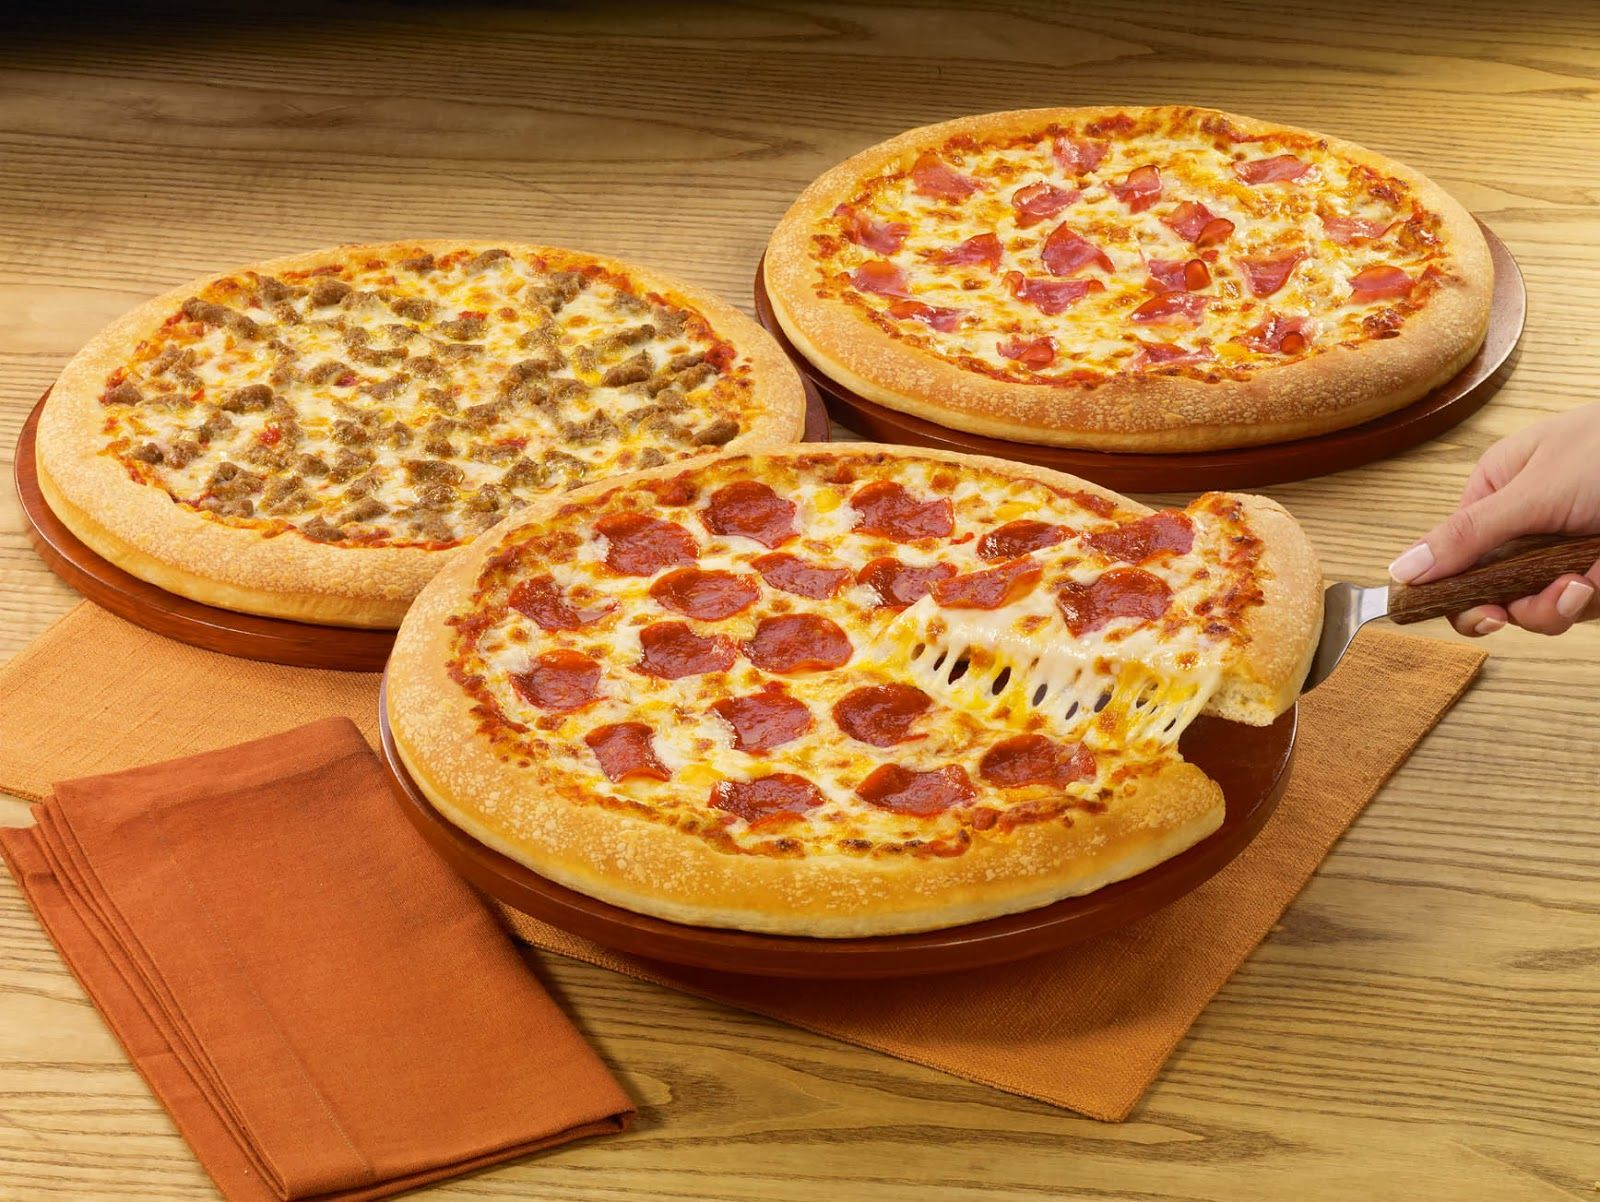 images of pizza